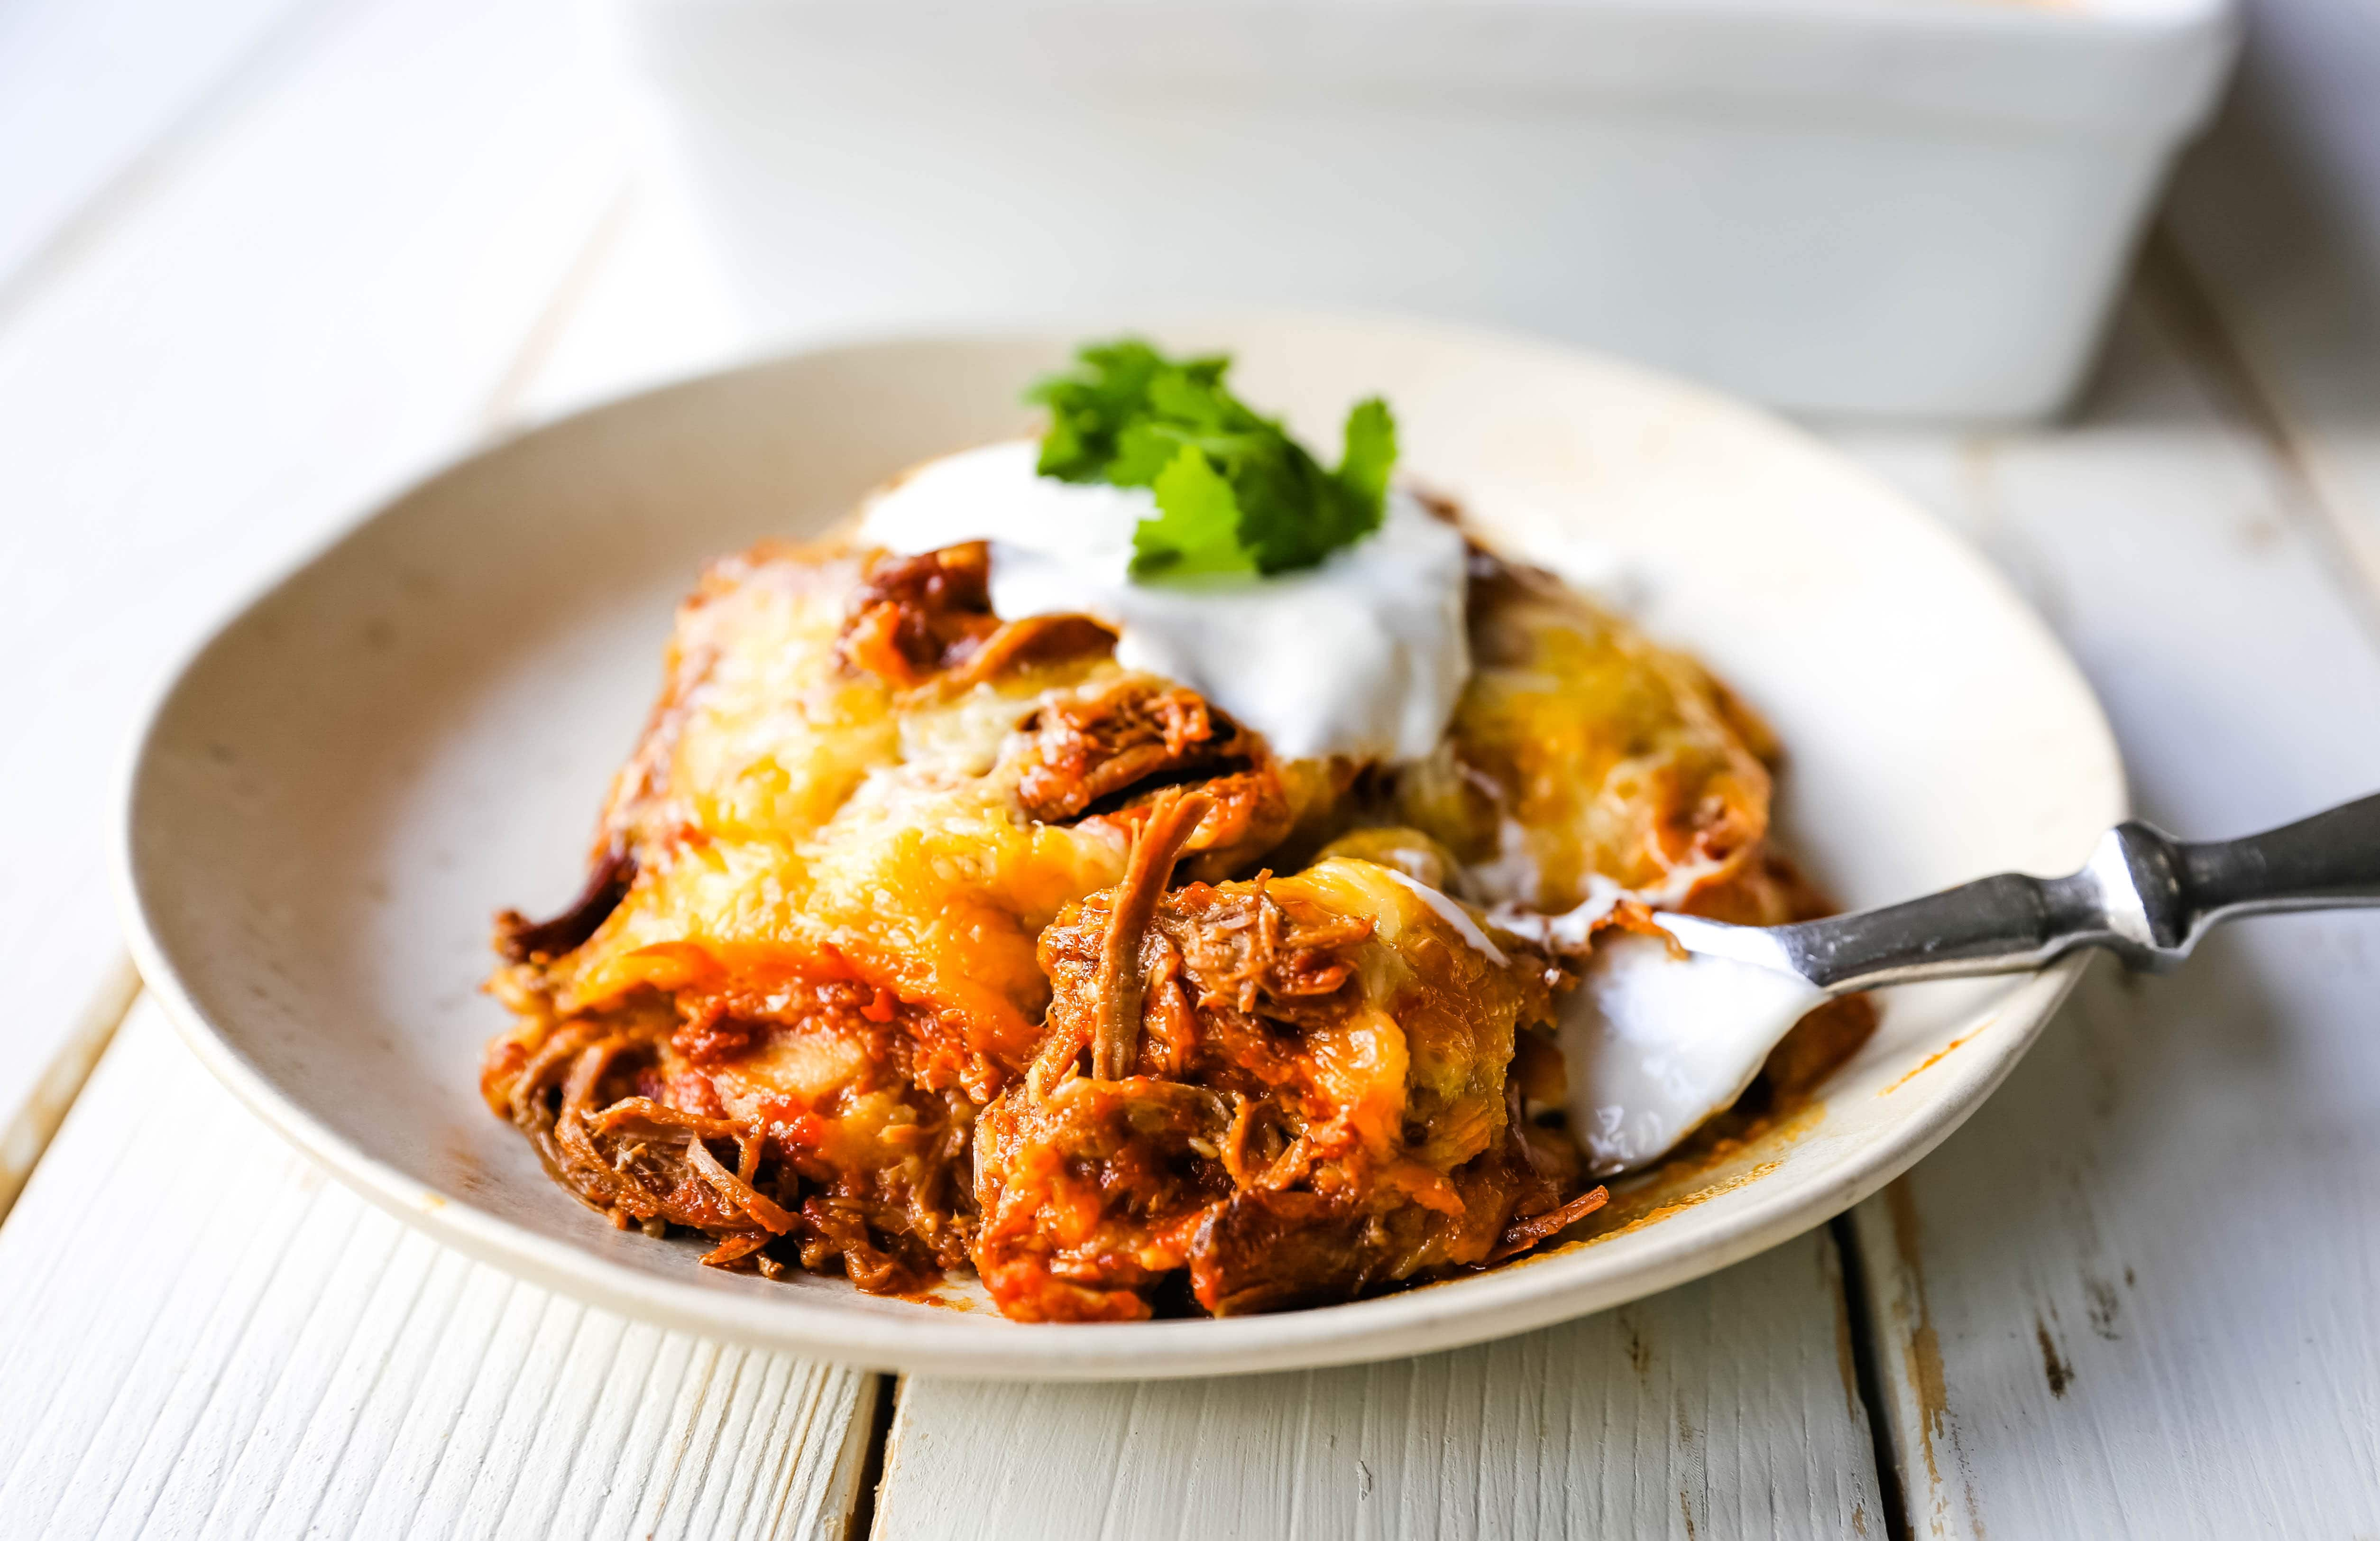 Stacked Beef Enchiladas. Mexican seasoned shredded beef enchiladas with melted cheese, corn tortillas, and homemade enchilada sauce. An easy beef enchilada casserole! #mexican #mexicanfood #enchiladas #beefenchiladas